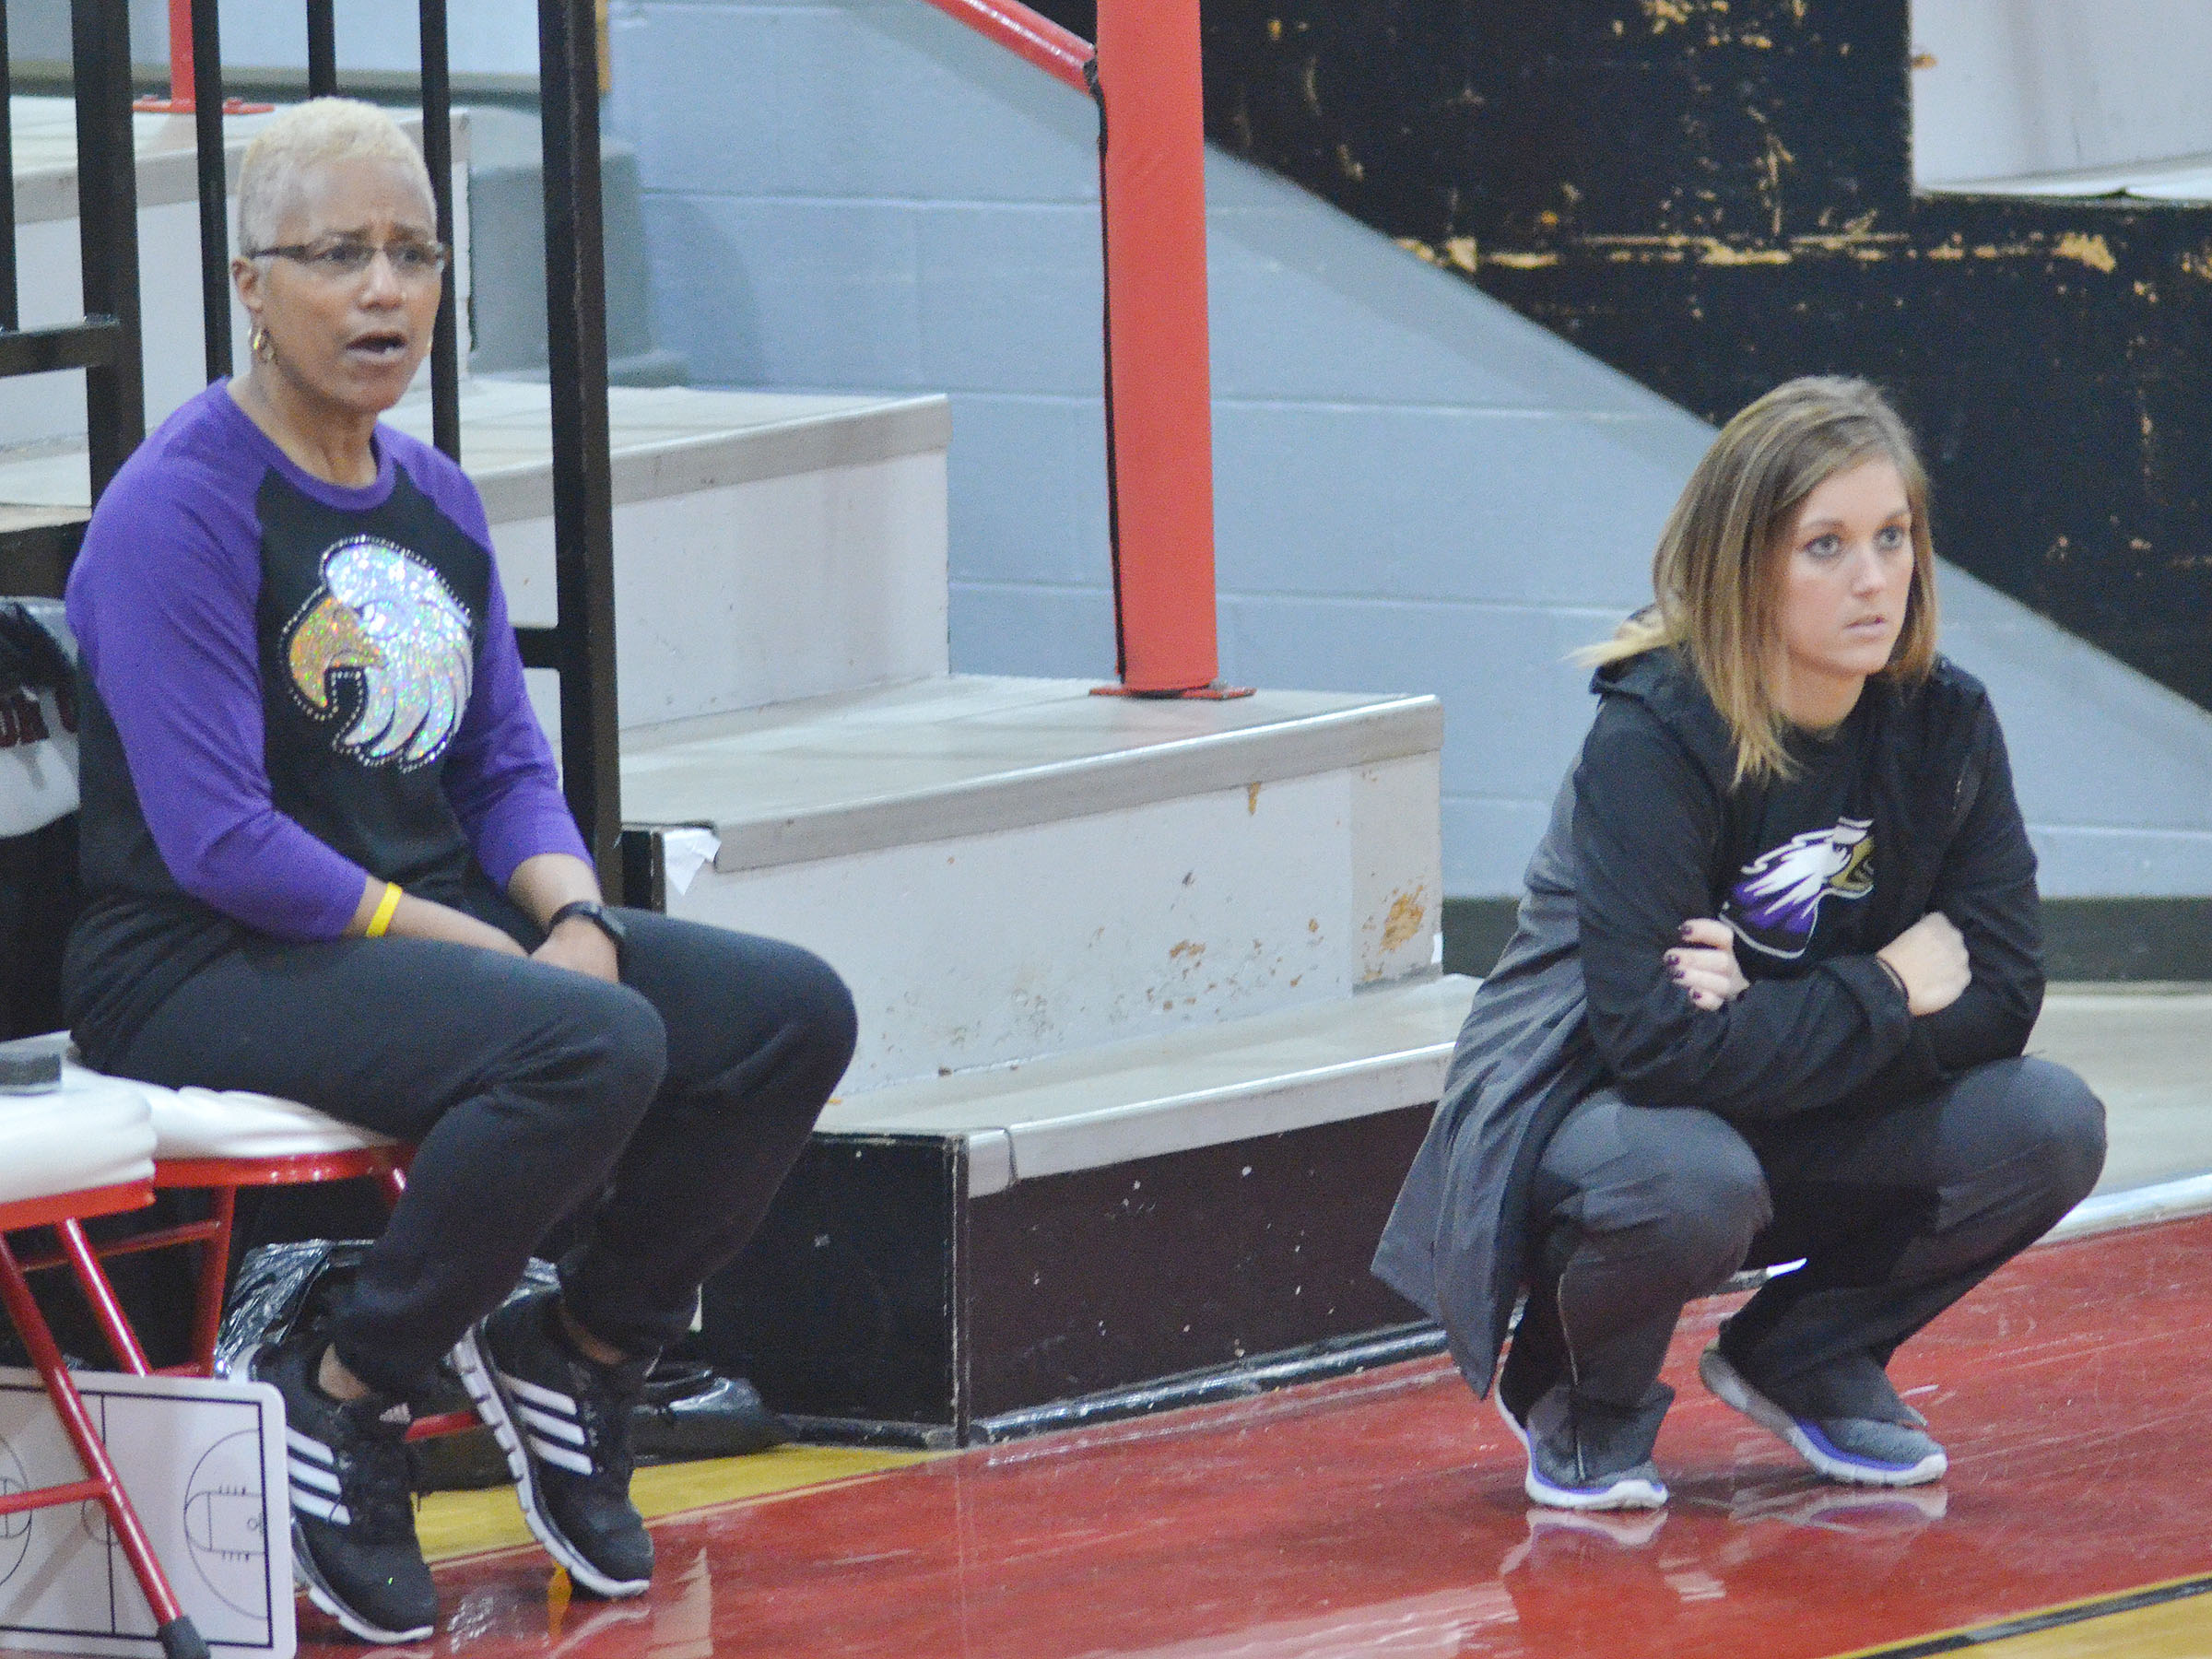 Assistant coaches Debbie Gowdy-Smith, at left, and Natalia Warren watch as their players take on Taylor County.